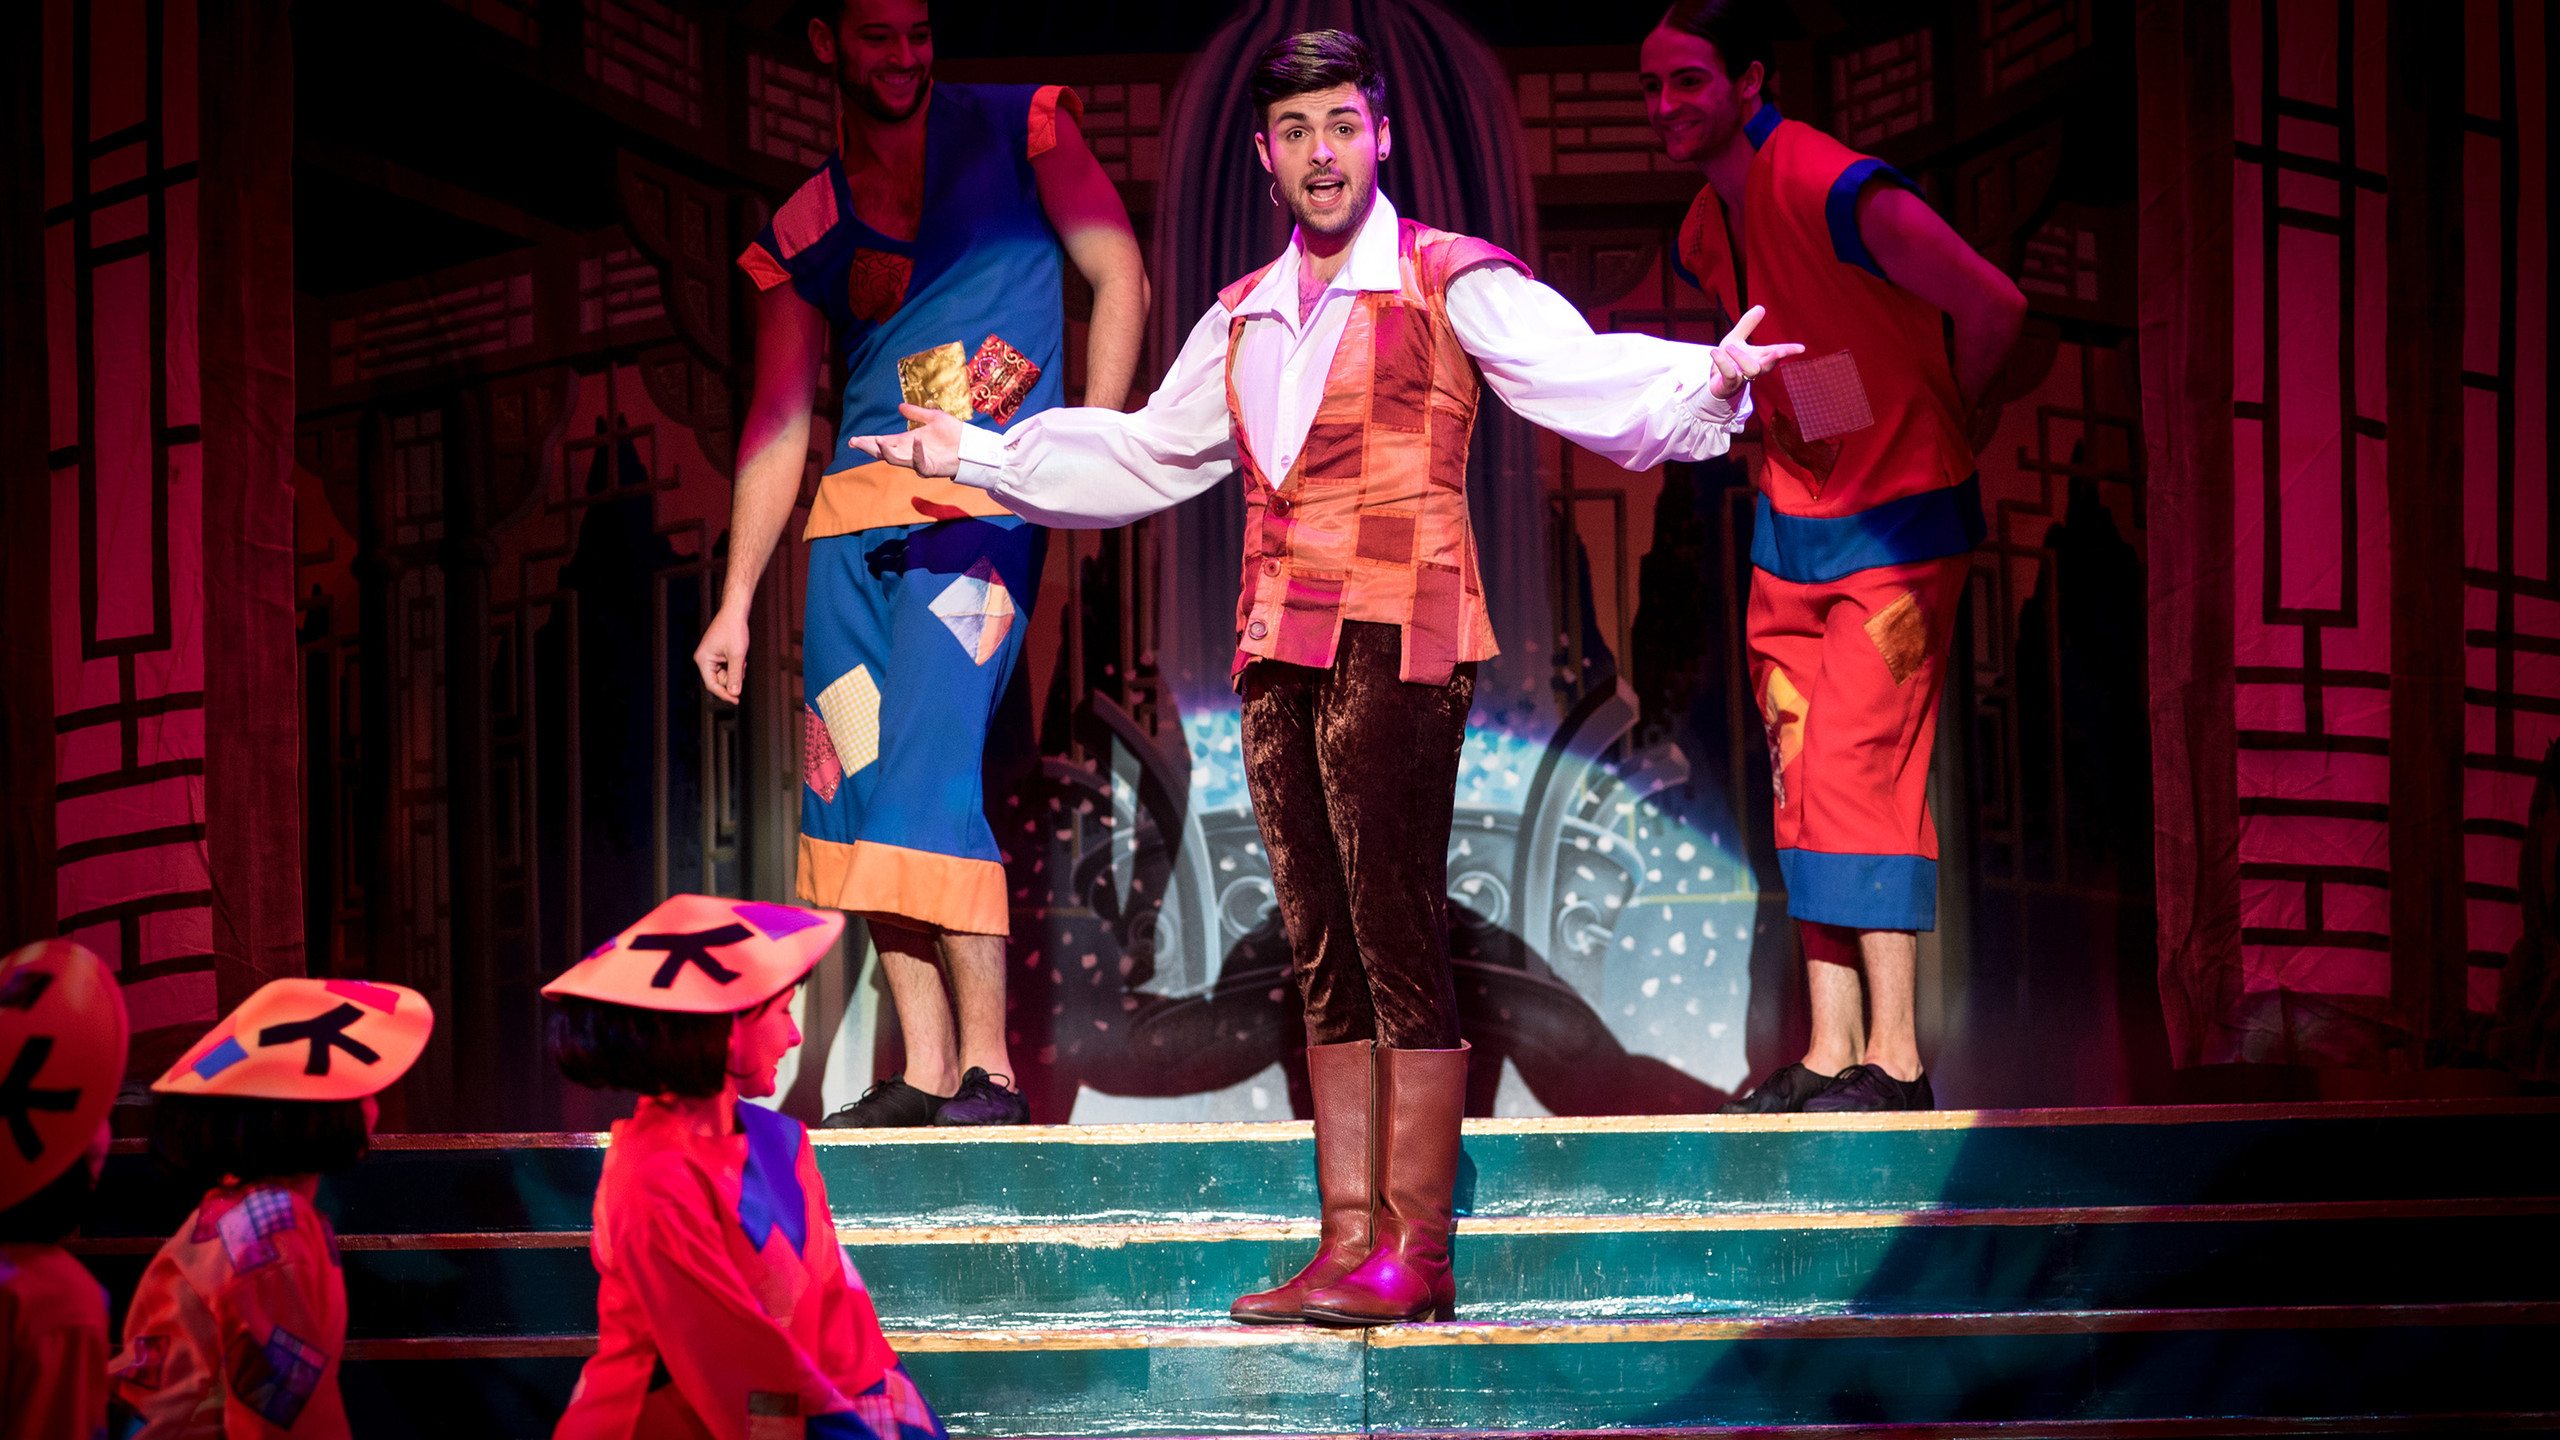 Aladdin - Jaymi Hensley - photo by Graeme Braidwood